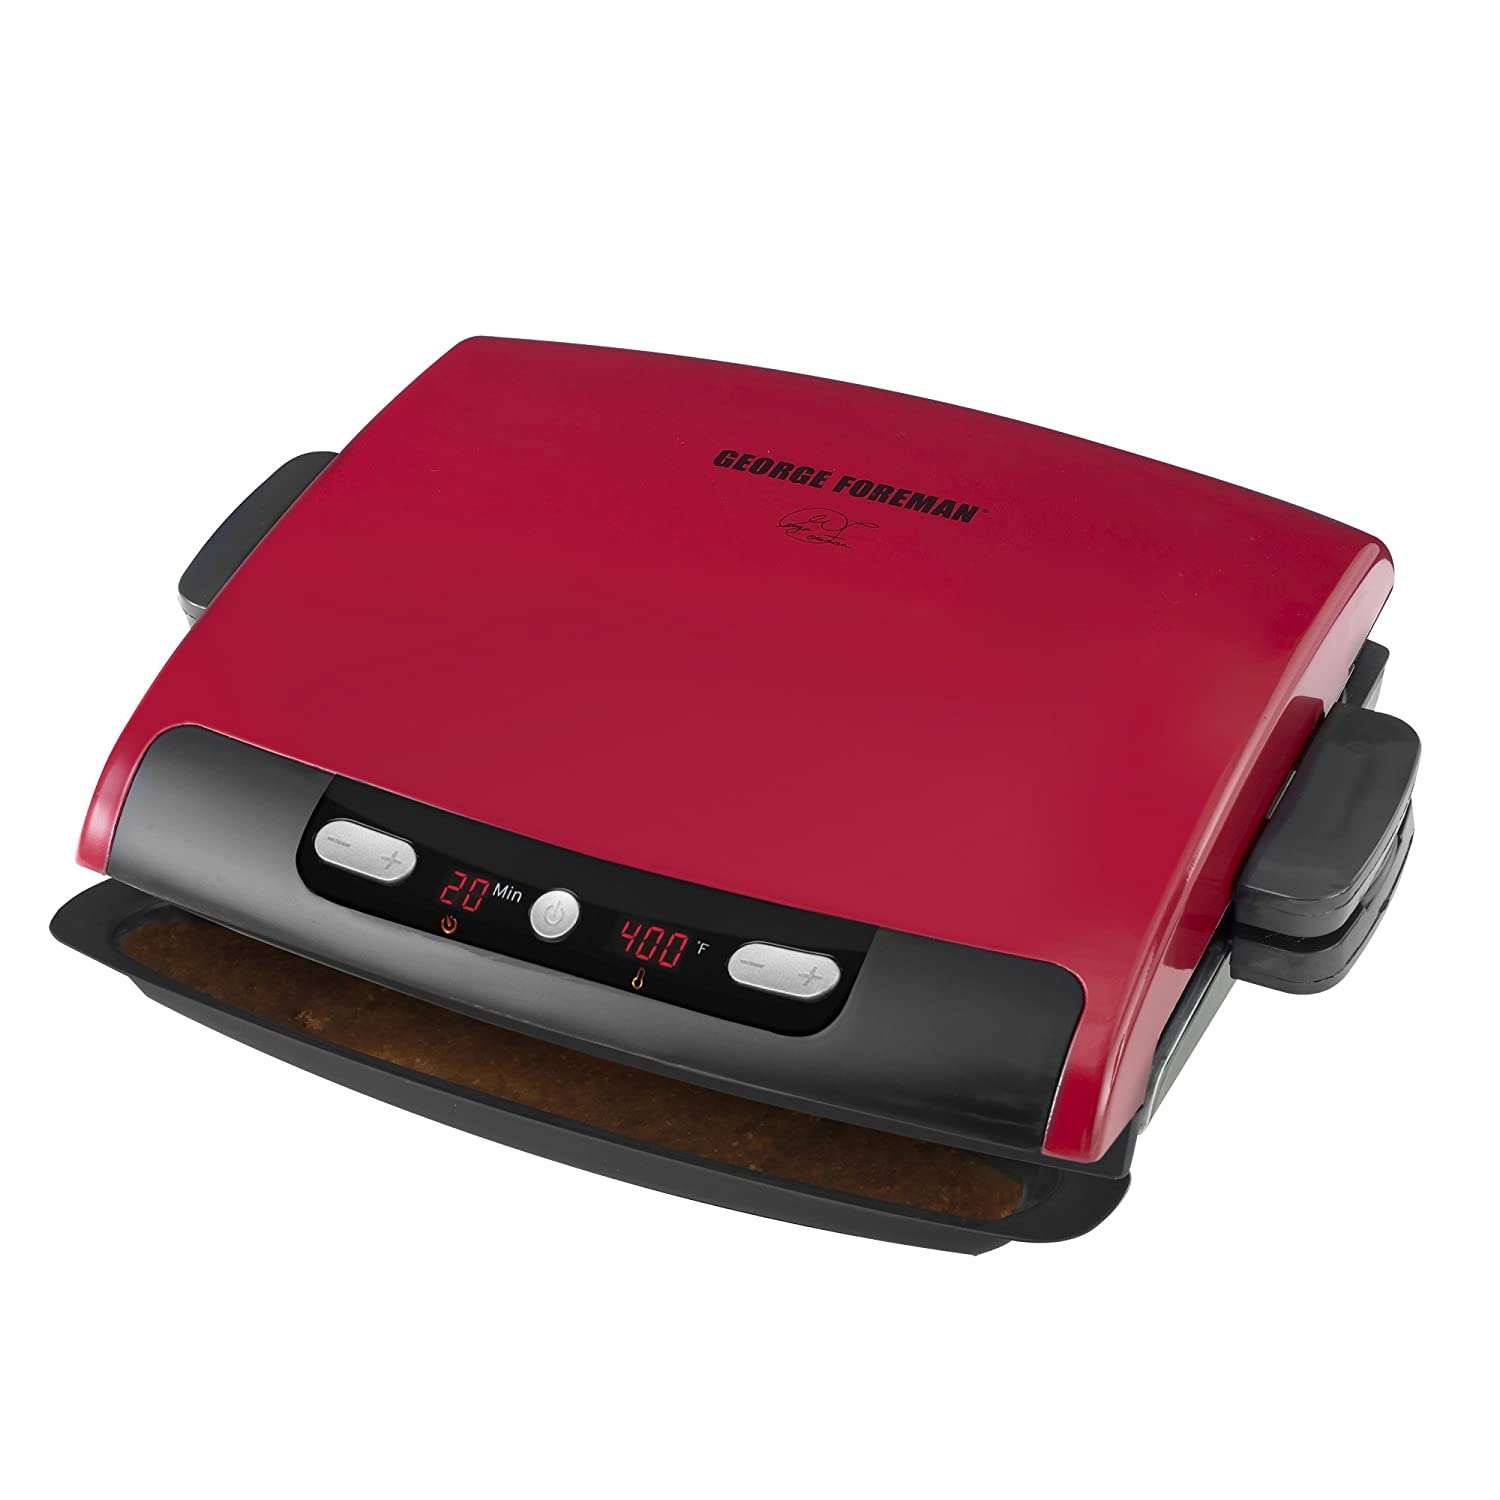 George foreman 6 serving removable plate grill red new free shipping ebay - Grill with removable plates ...